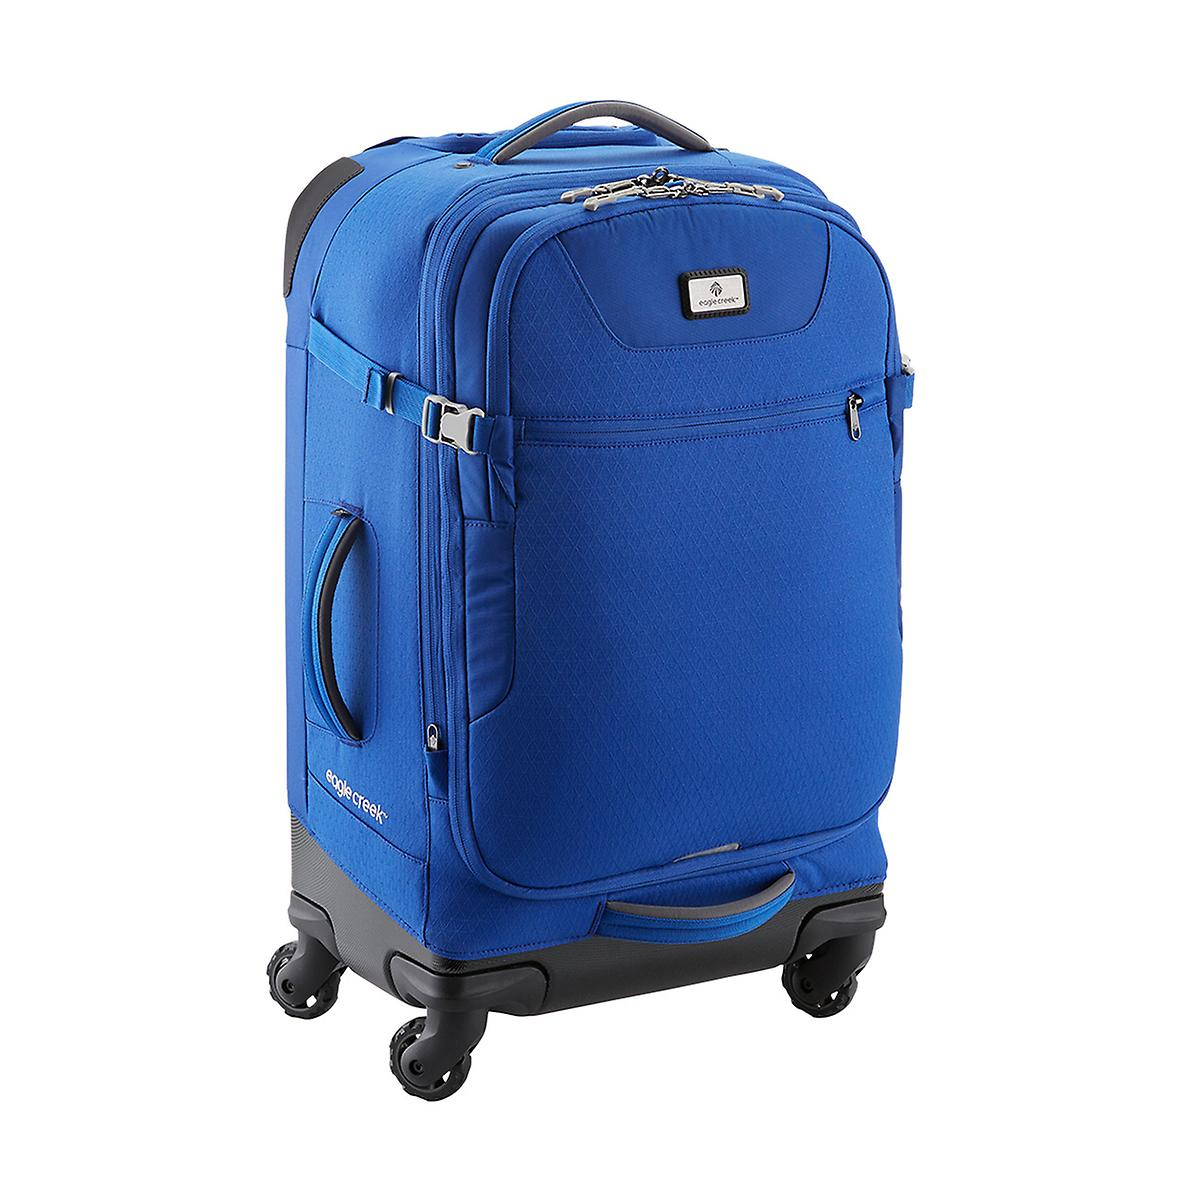 "Eagle Creek Blue 26"" Explore 4-Wheeled Luggage"